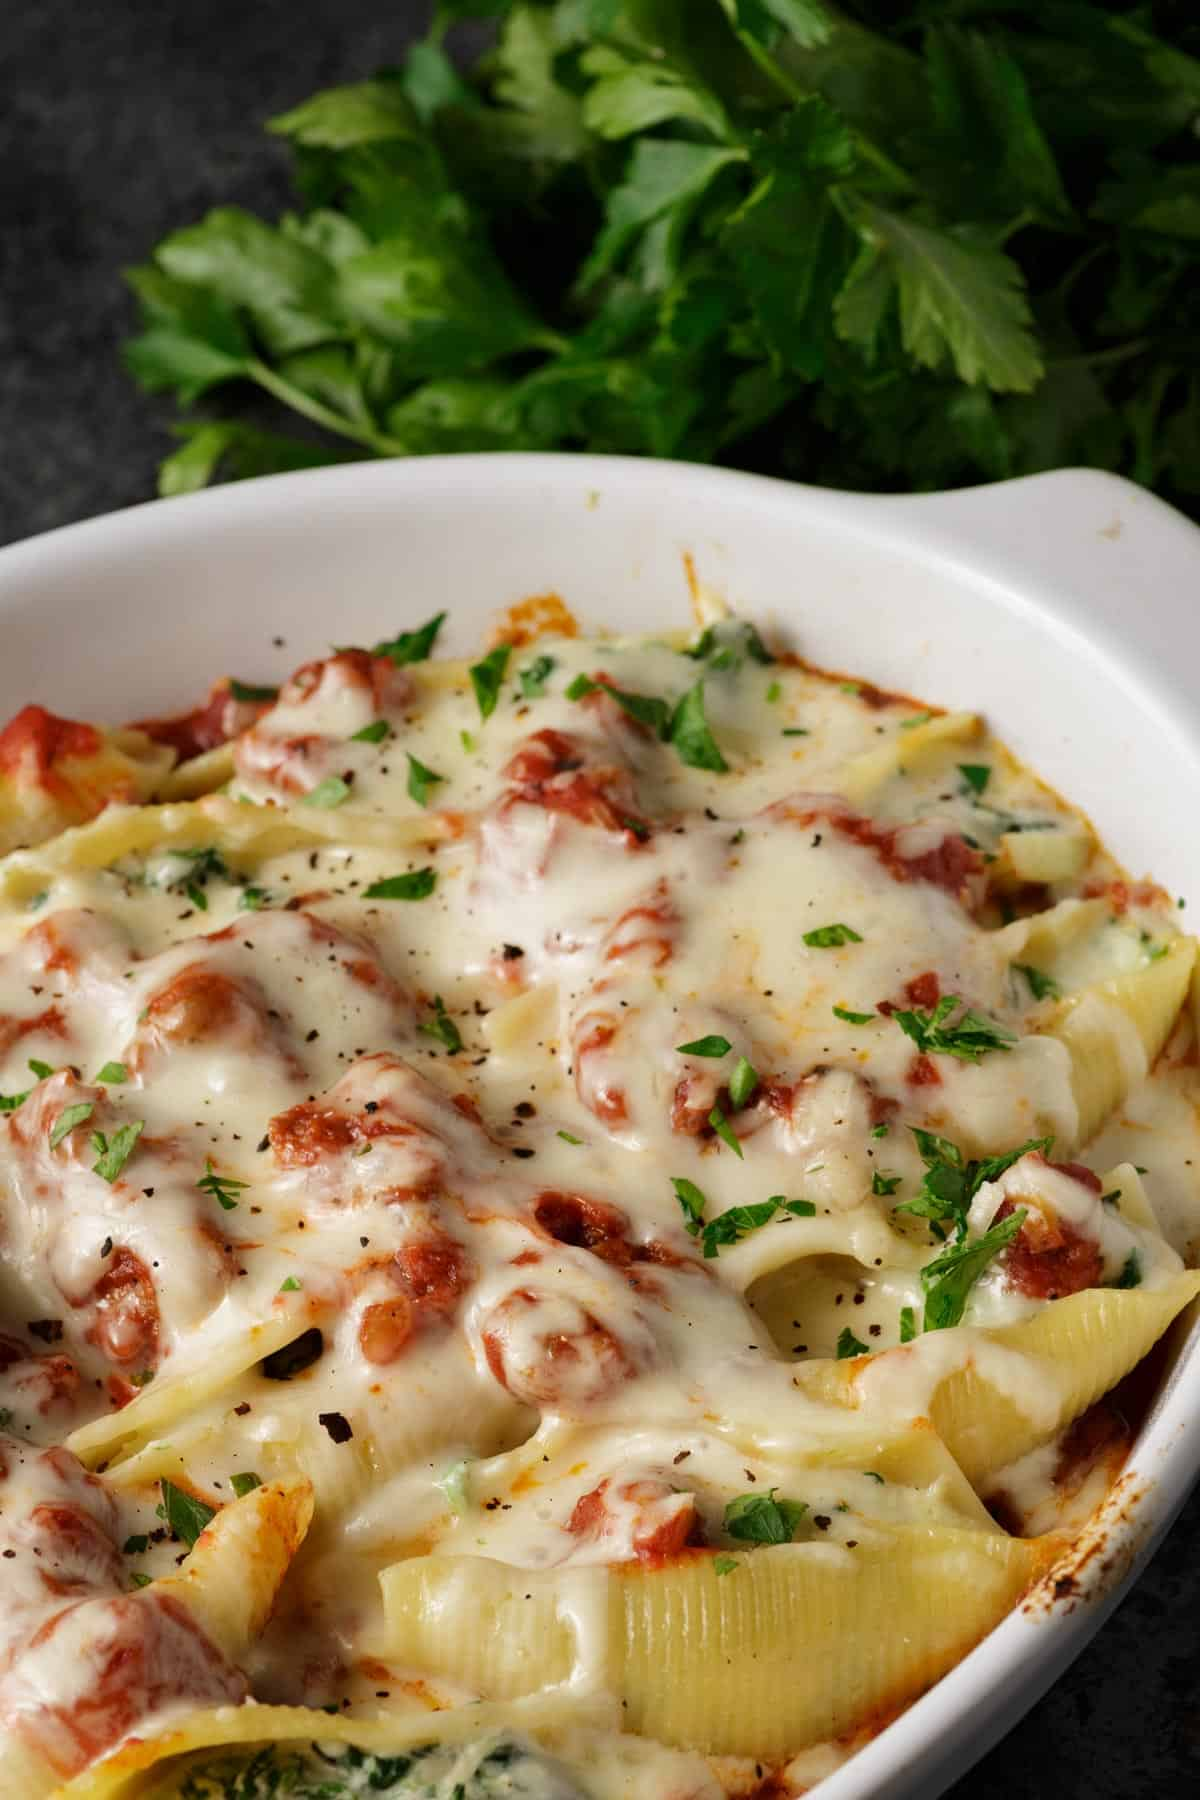 A baking dish of cooked stuffed shells with spinach and ricotta